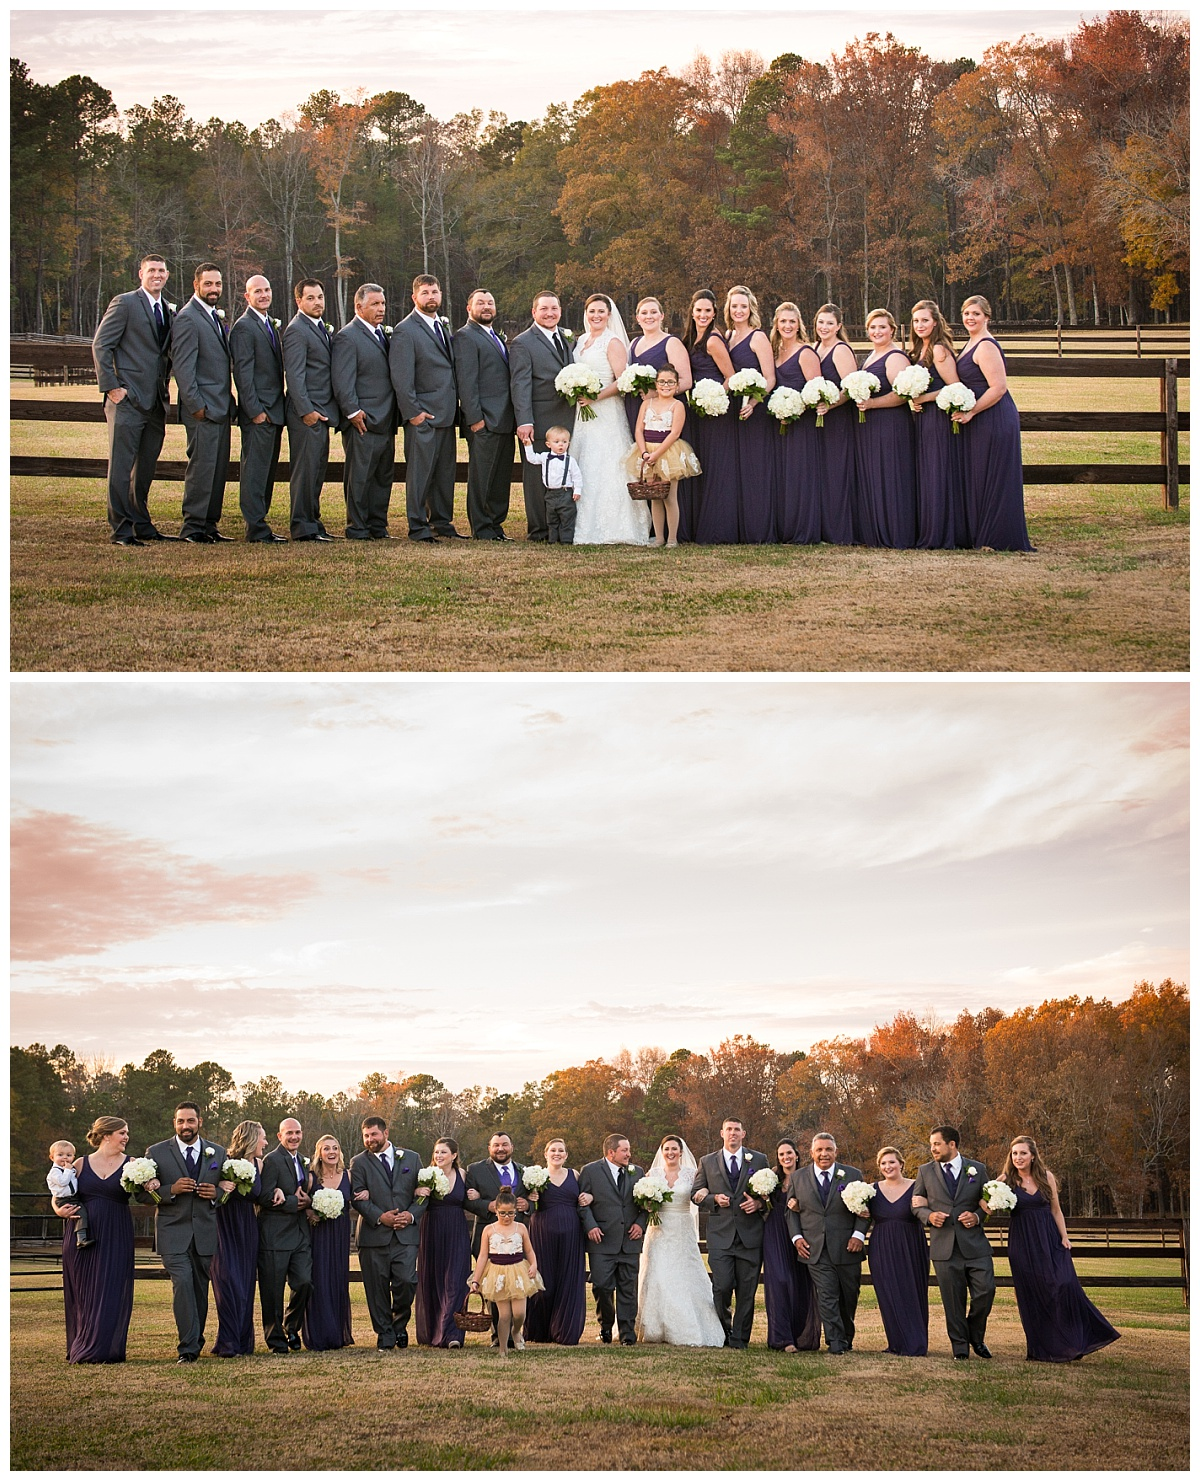 Bridal party photos on the Farm at Ridgeway